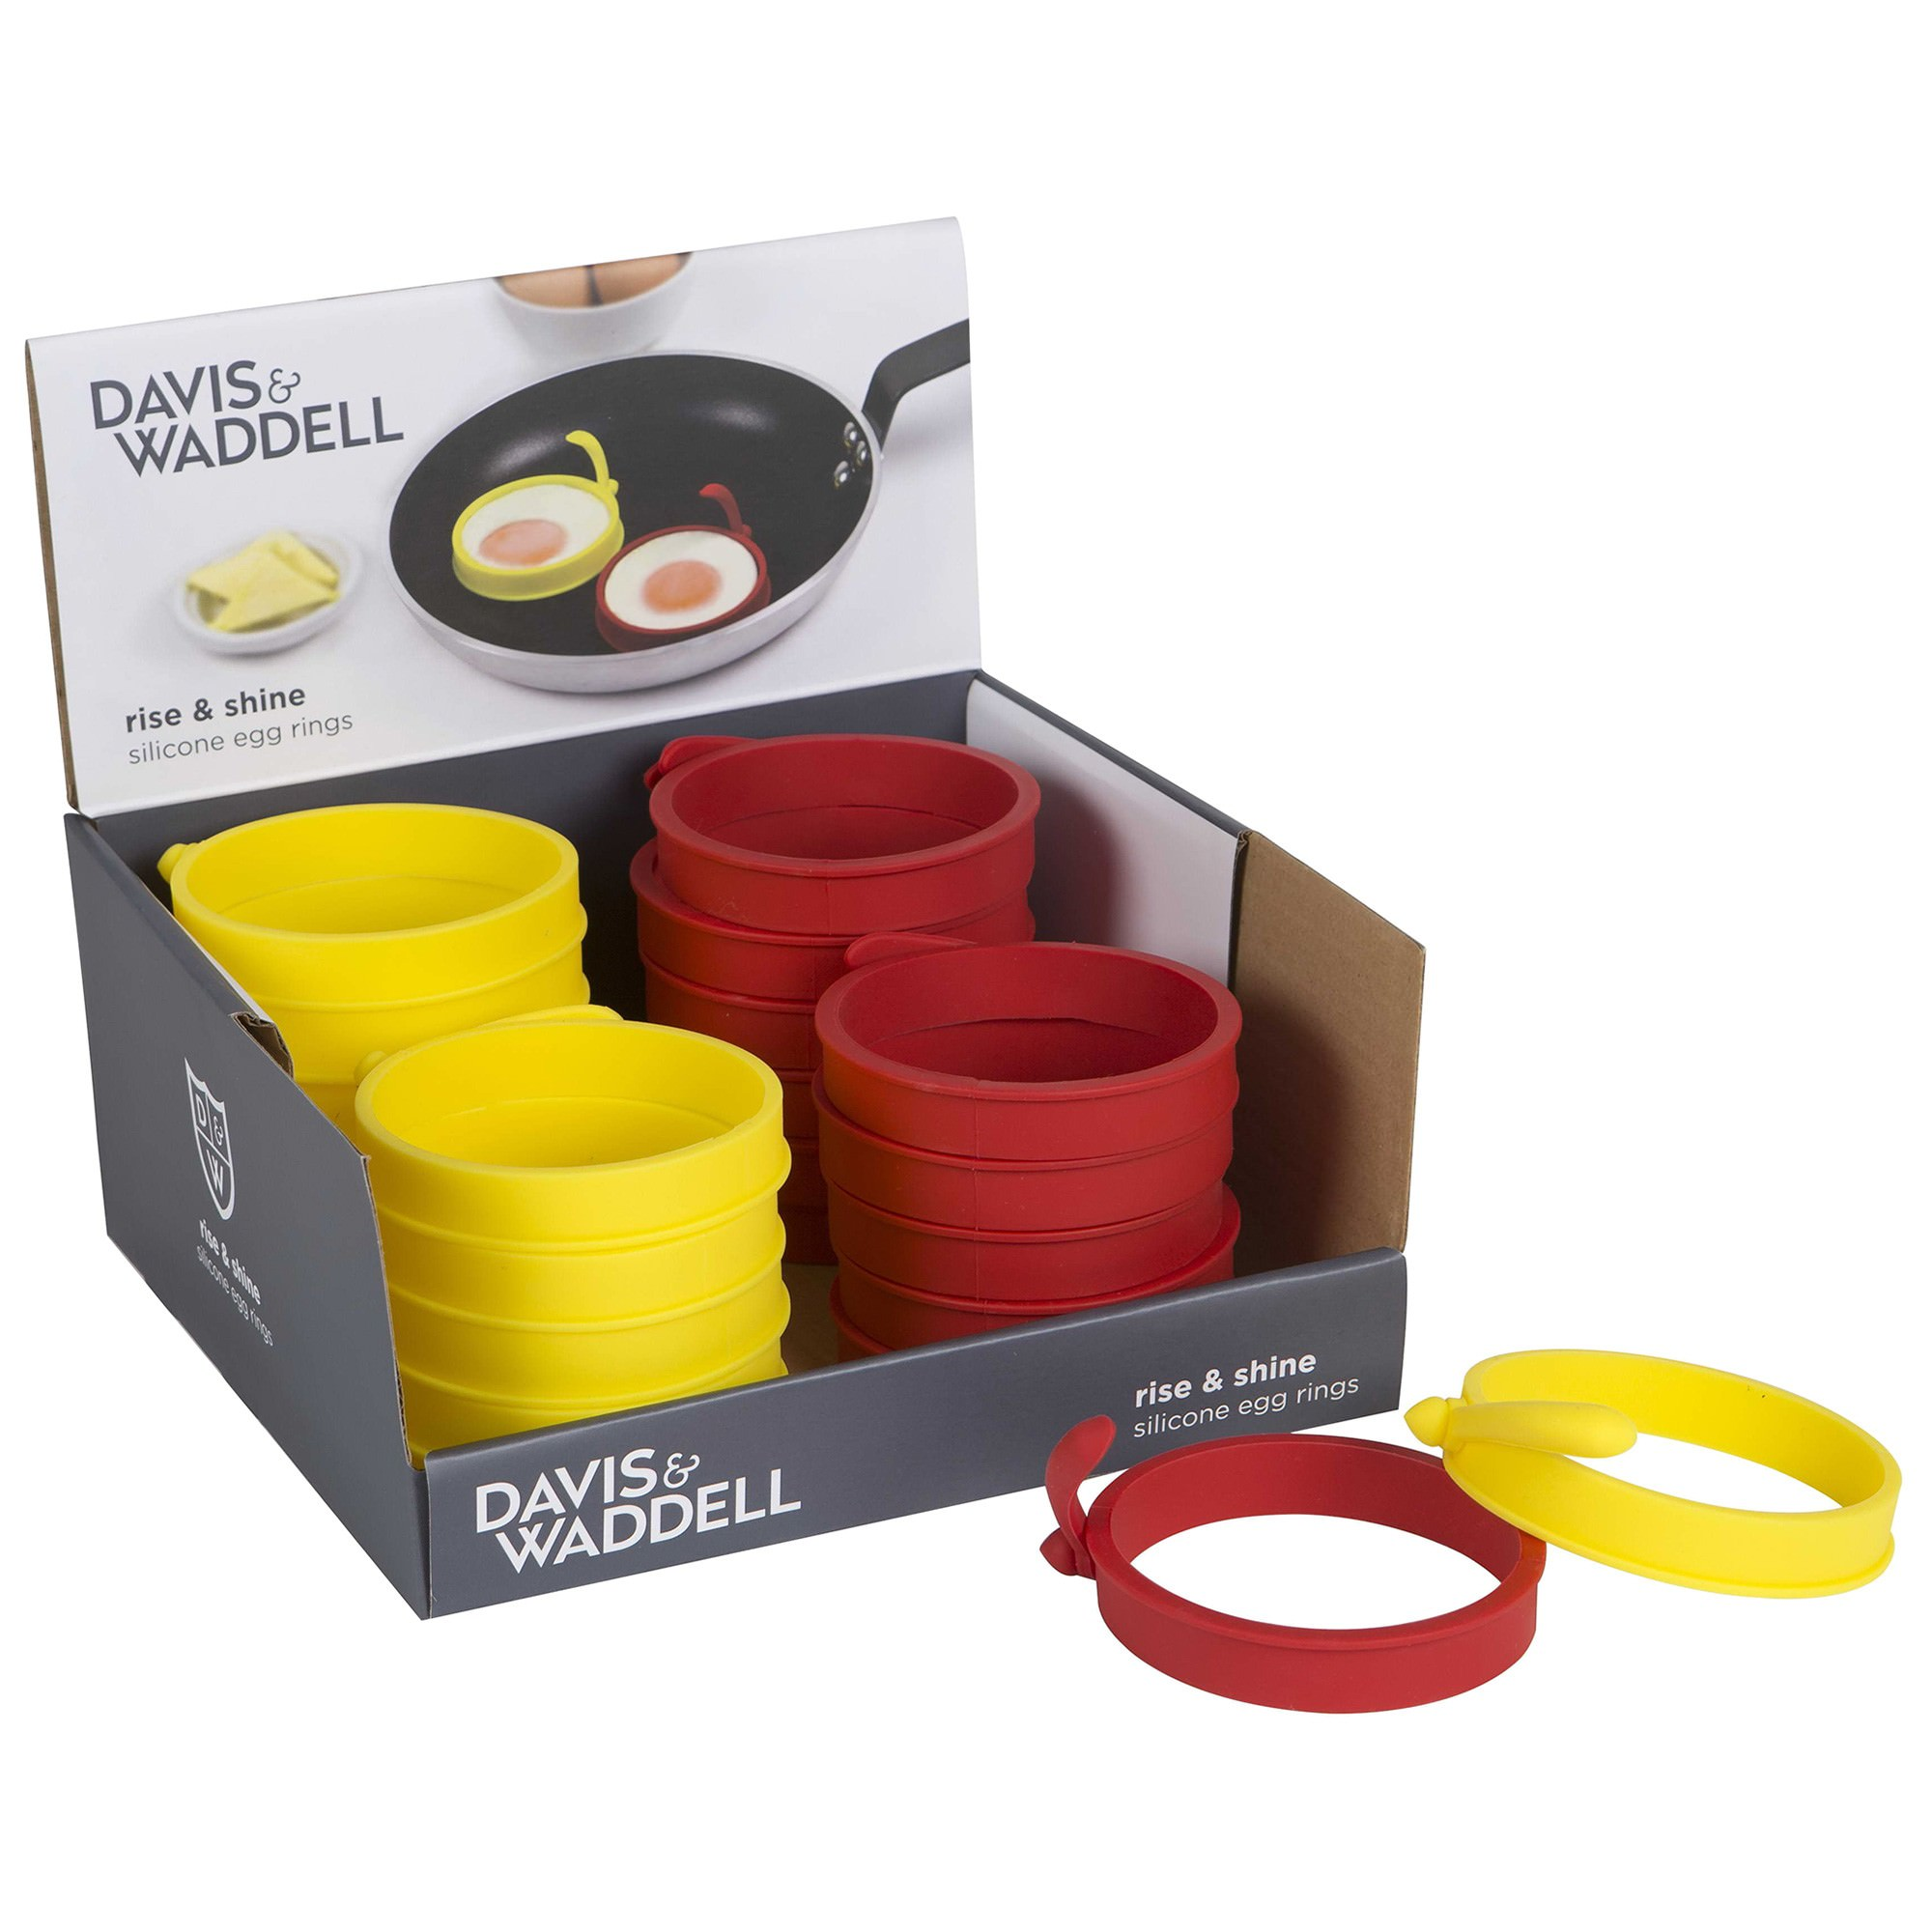 Davis & Waddell Silicone Egg Rings, 24 Pack